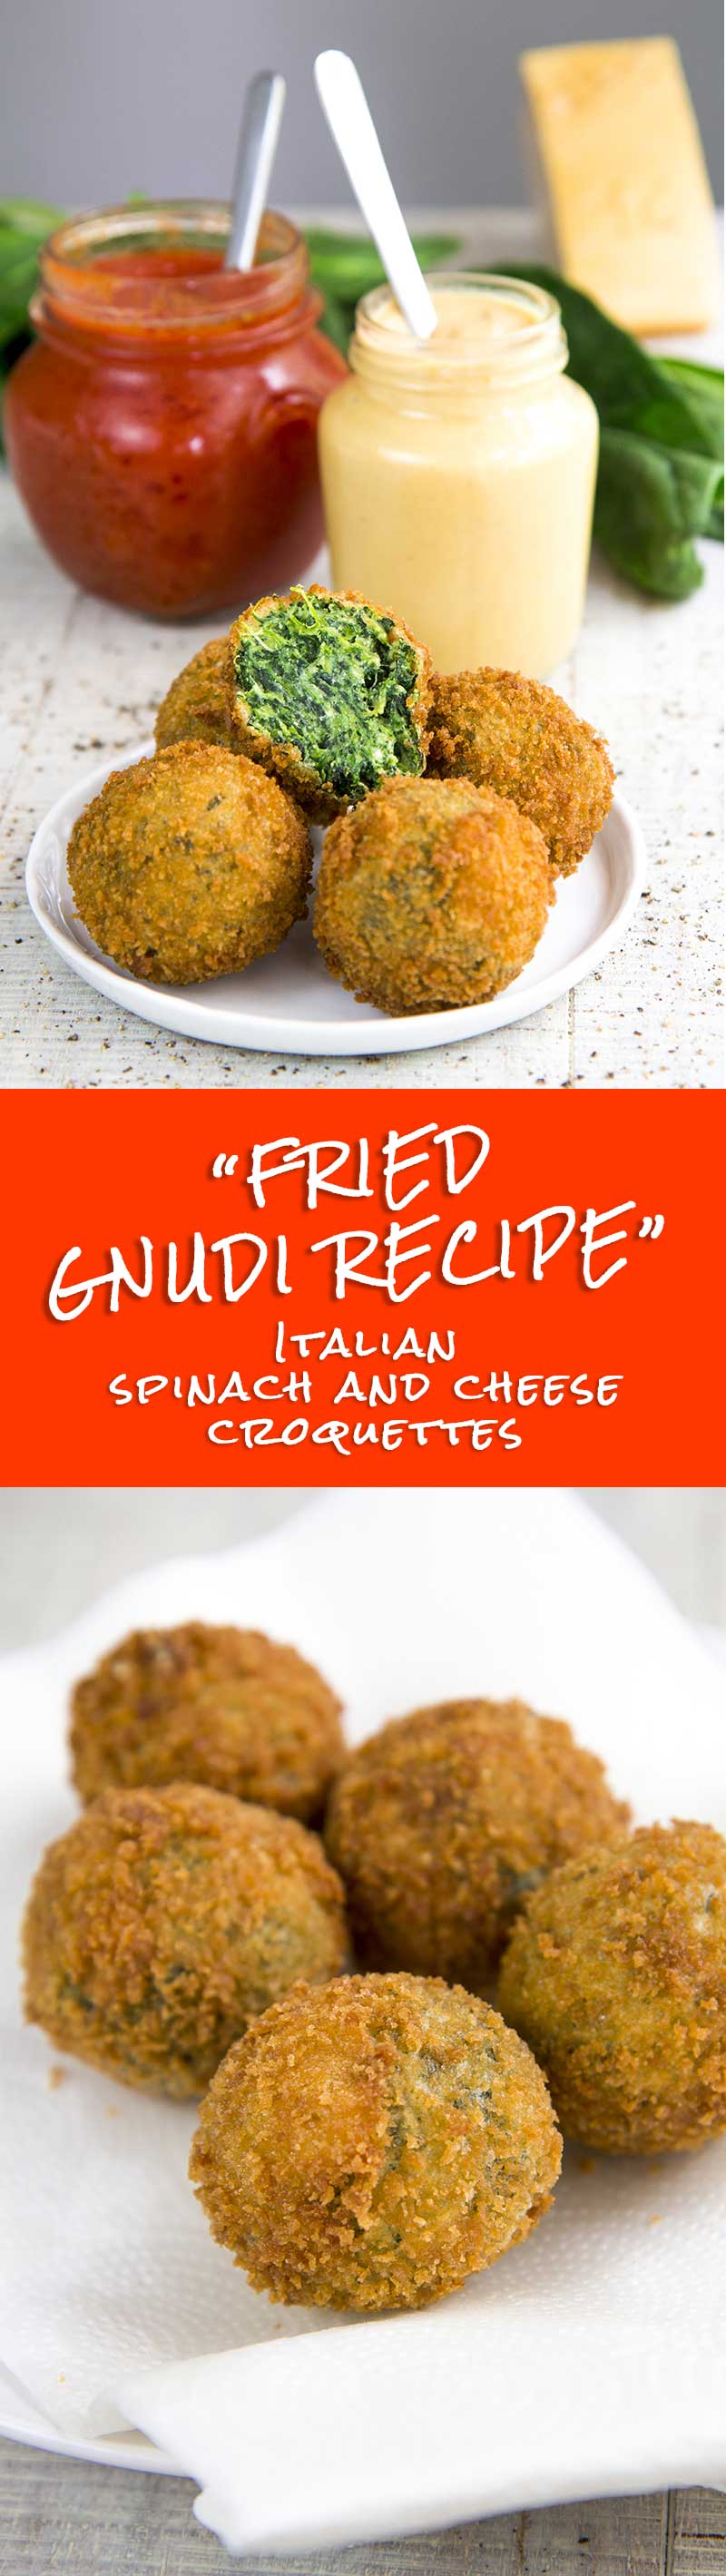 FRIED GNUDI - Italian spinach and cheese croquettes